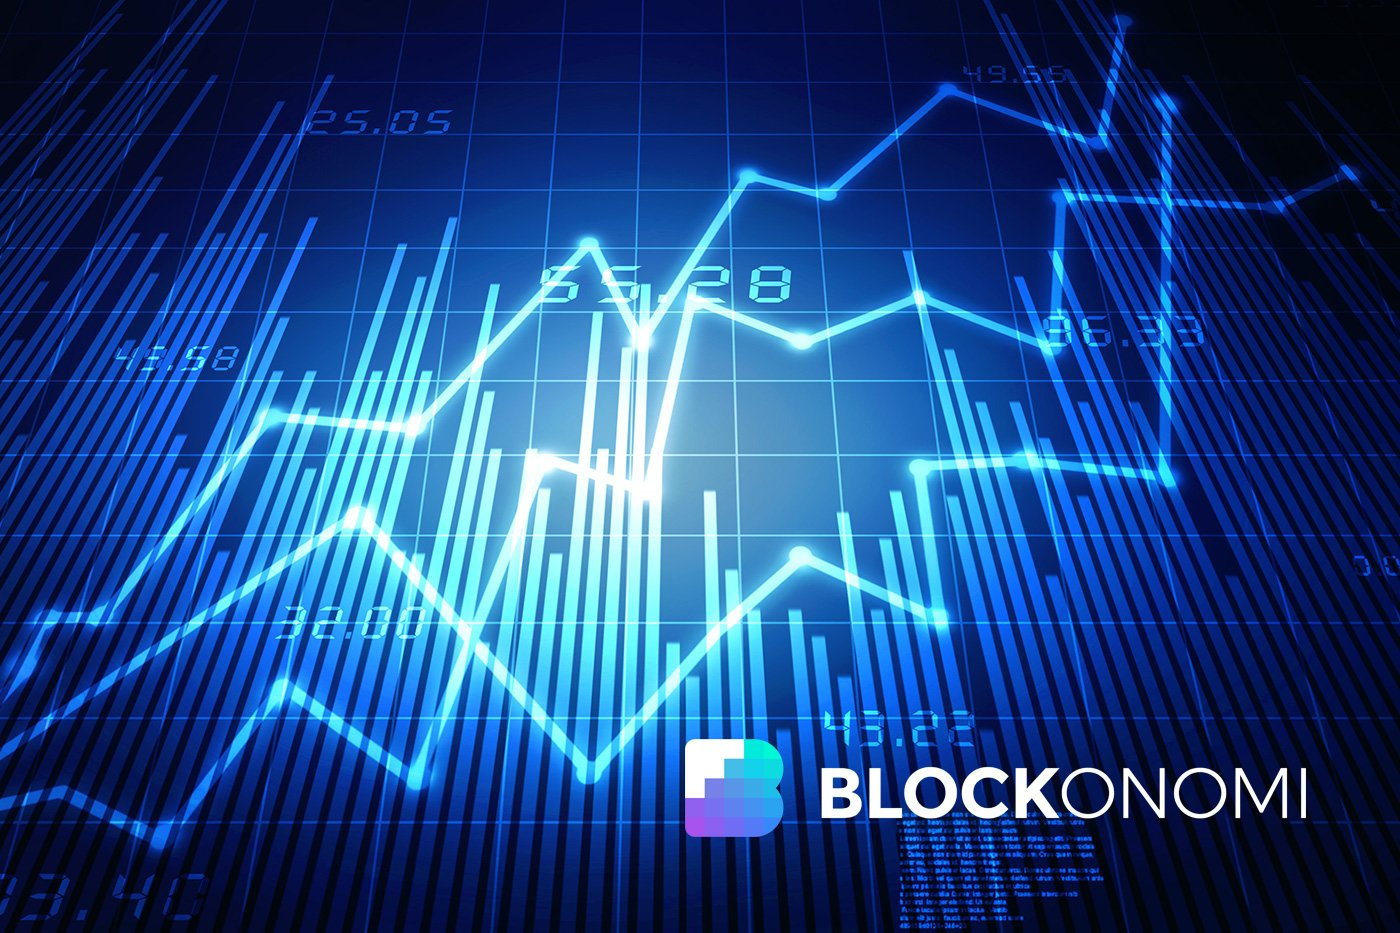 Crypto Market Update: Consolidation After Run Up (BTC, BCH, XLM Price Analysis)